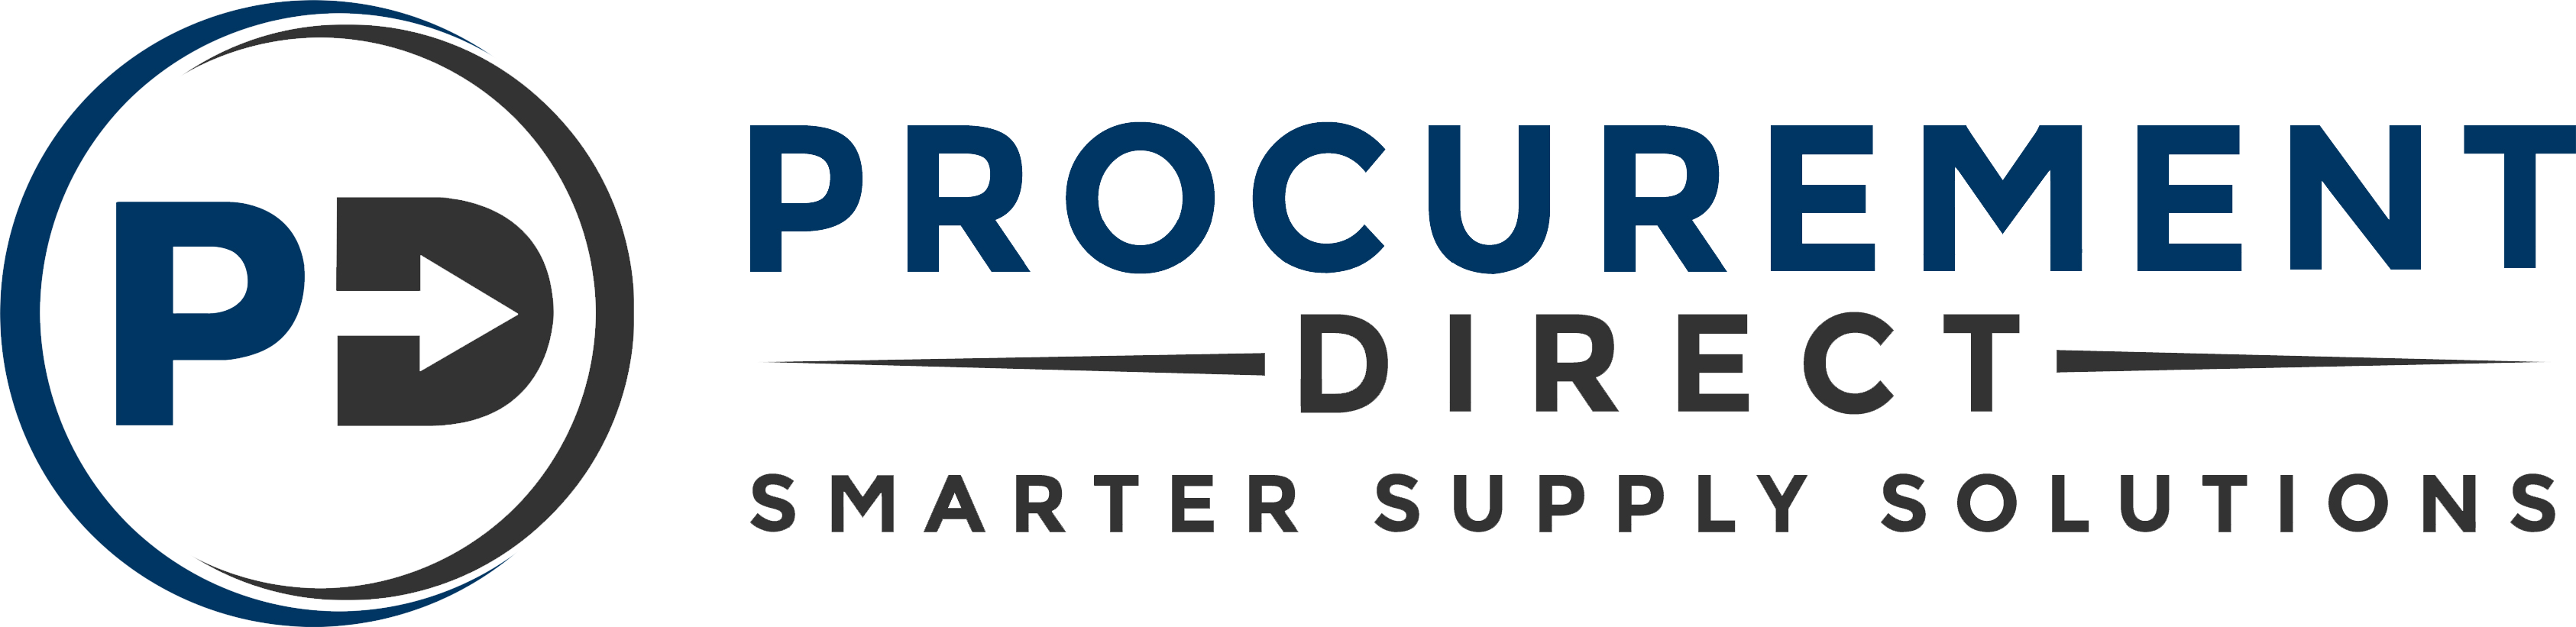 Procurement Direct